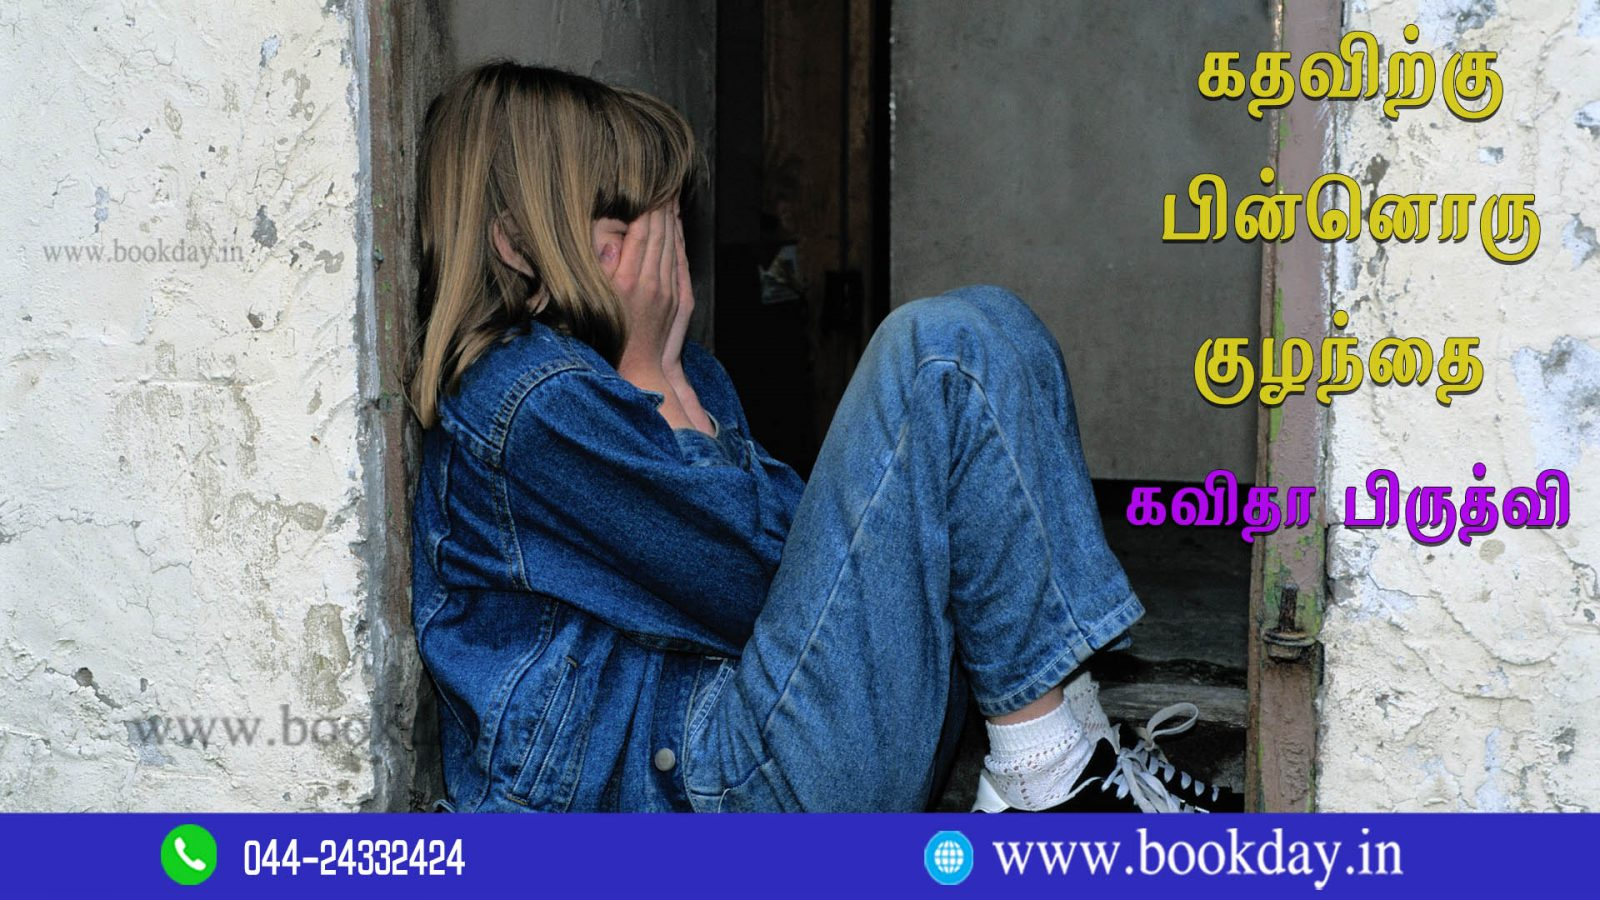 A child behind the door (கதவிற்கு பின்னொரு குழந்தை) Poetry By Kavitha Prithivi. Book Day is Branch of Bharathi Puthakalayam.